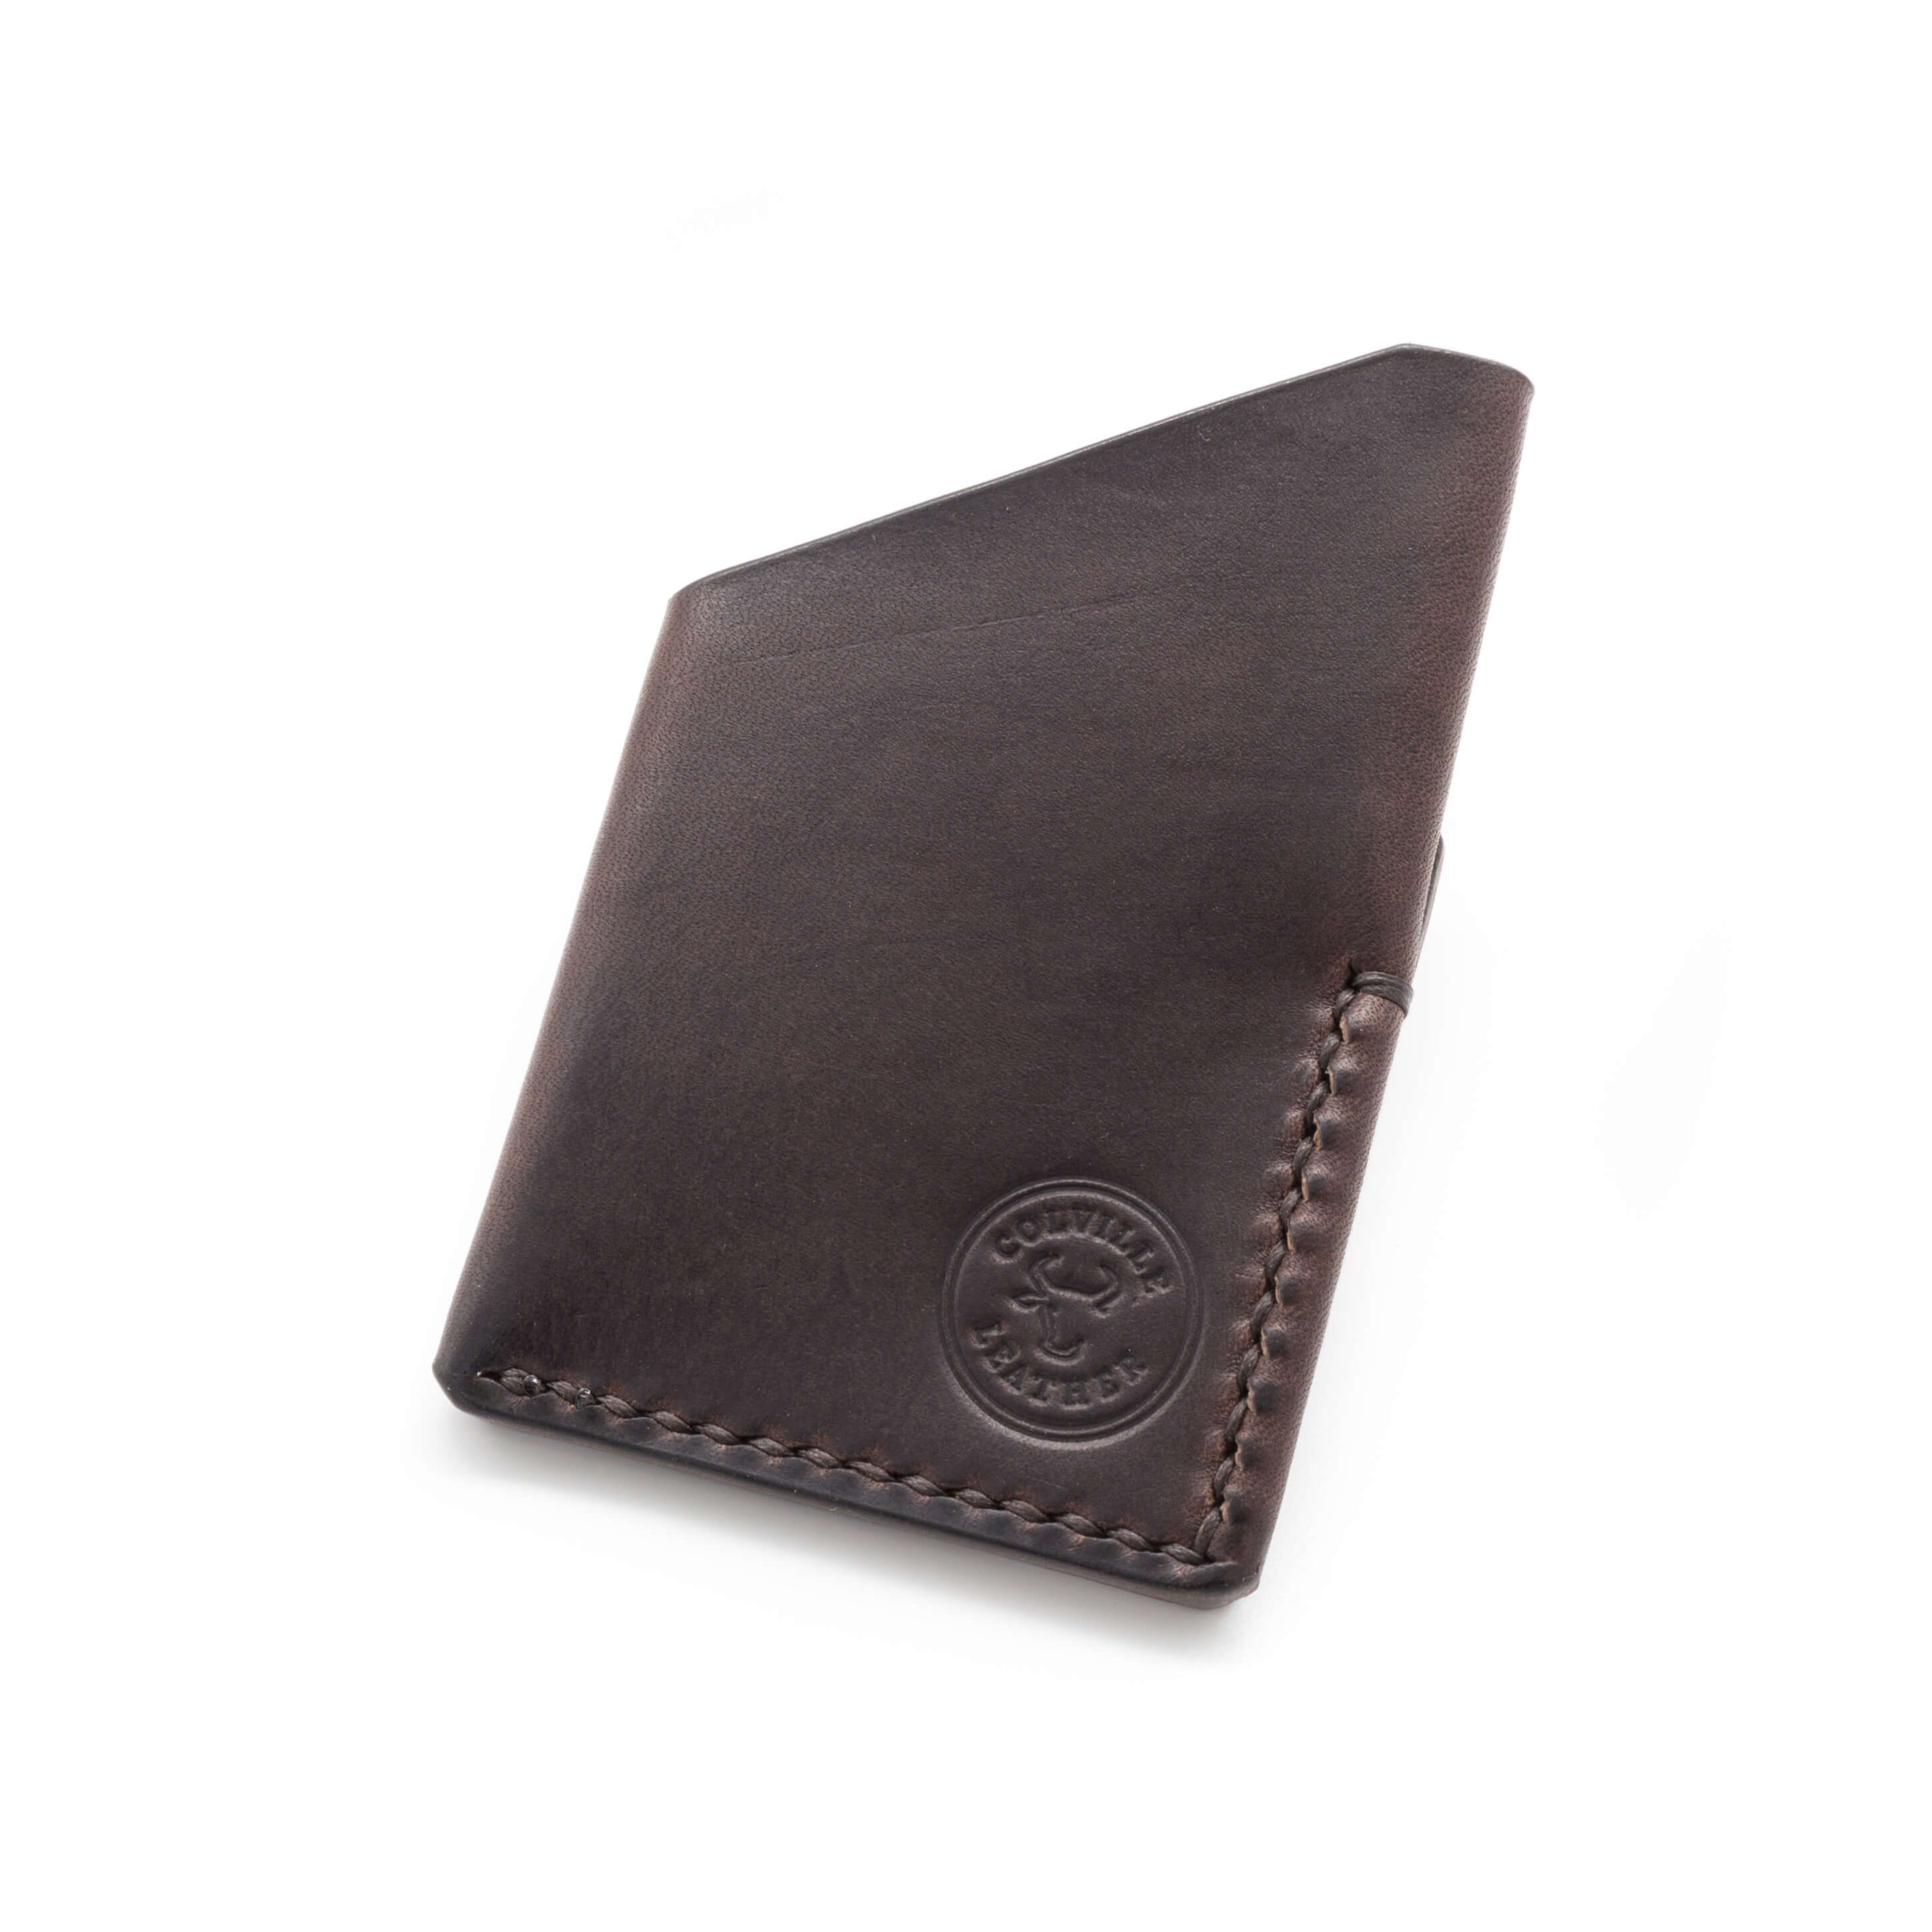 markers mark on a handmade leather wallet